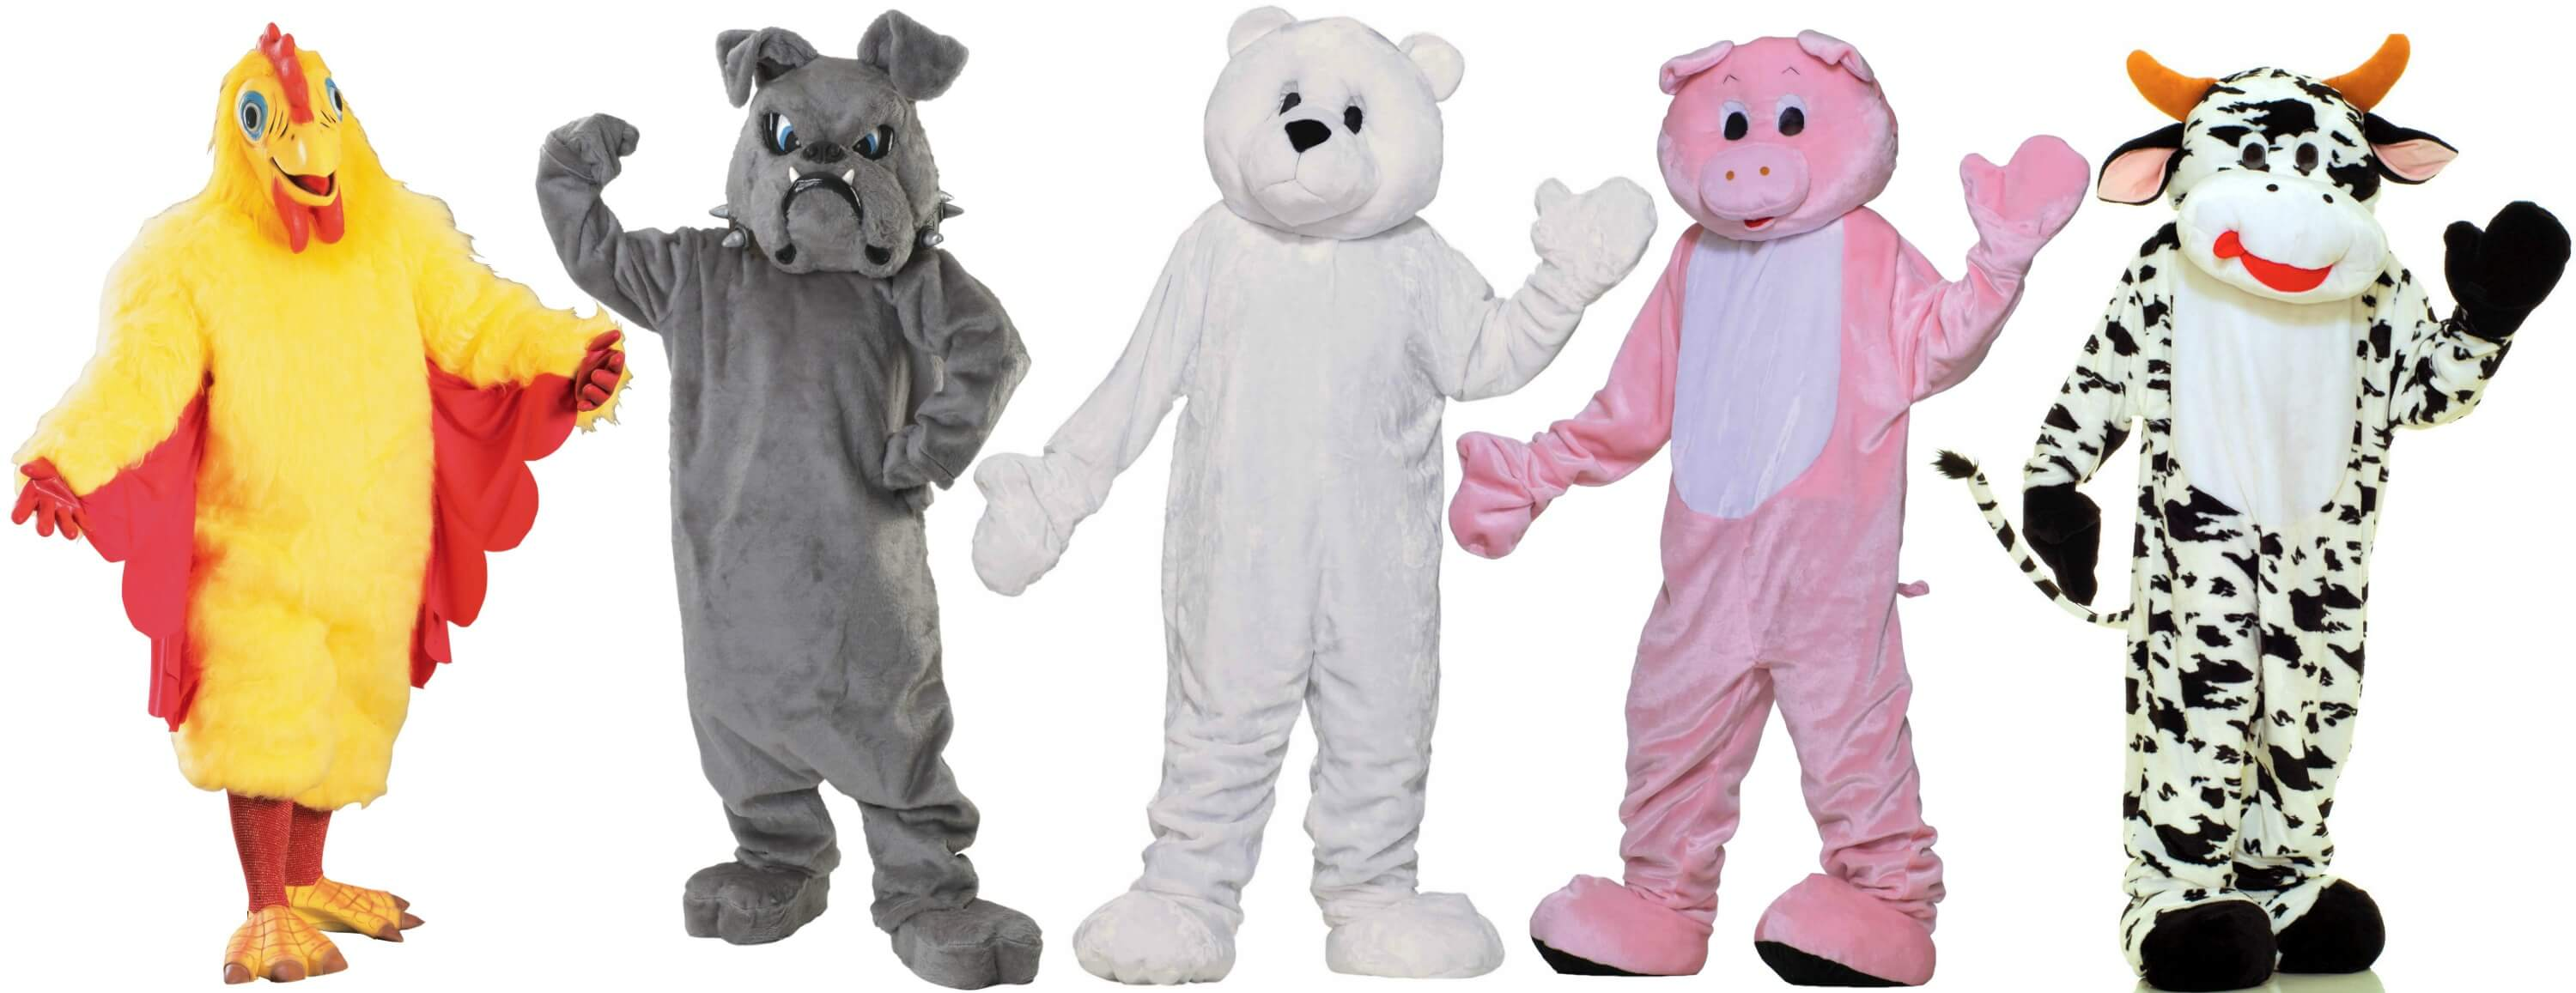 mascot costumes for the party animal